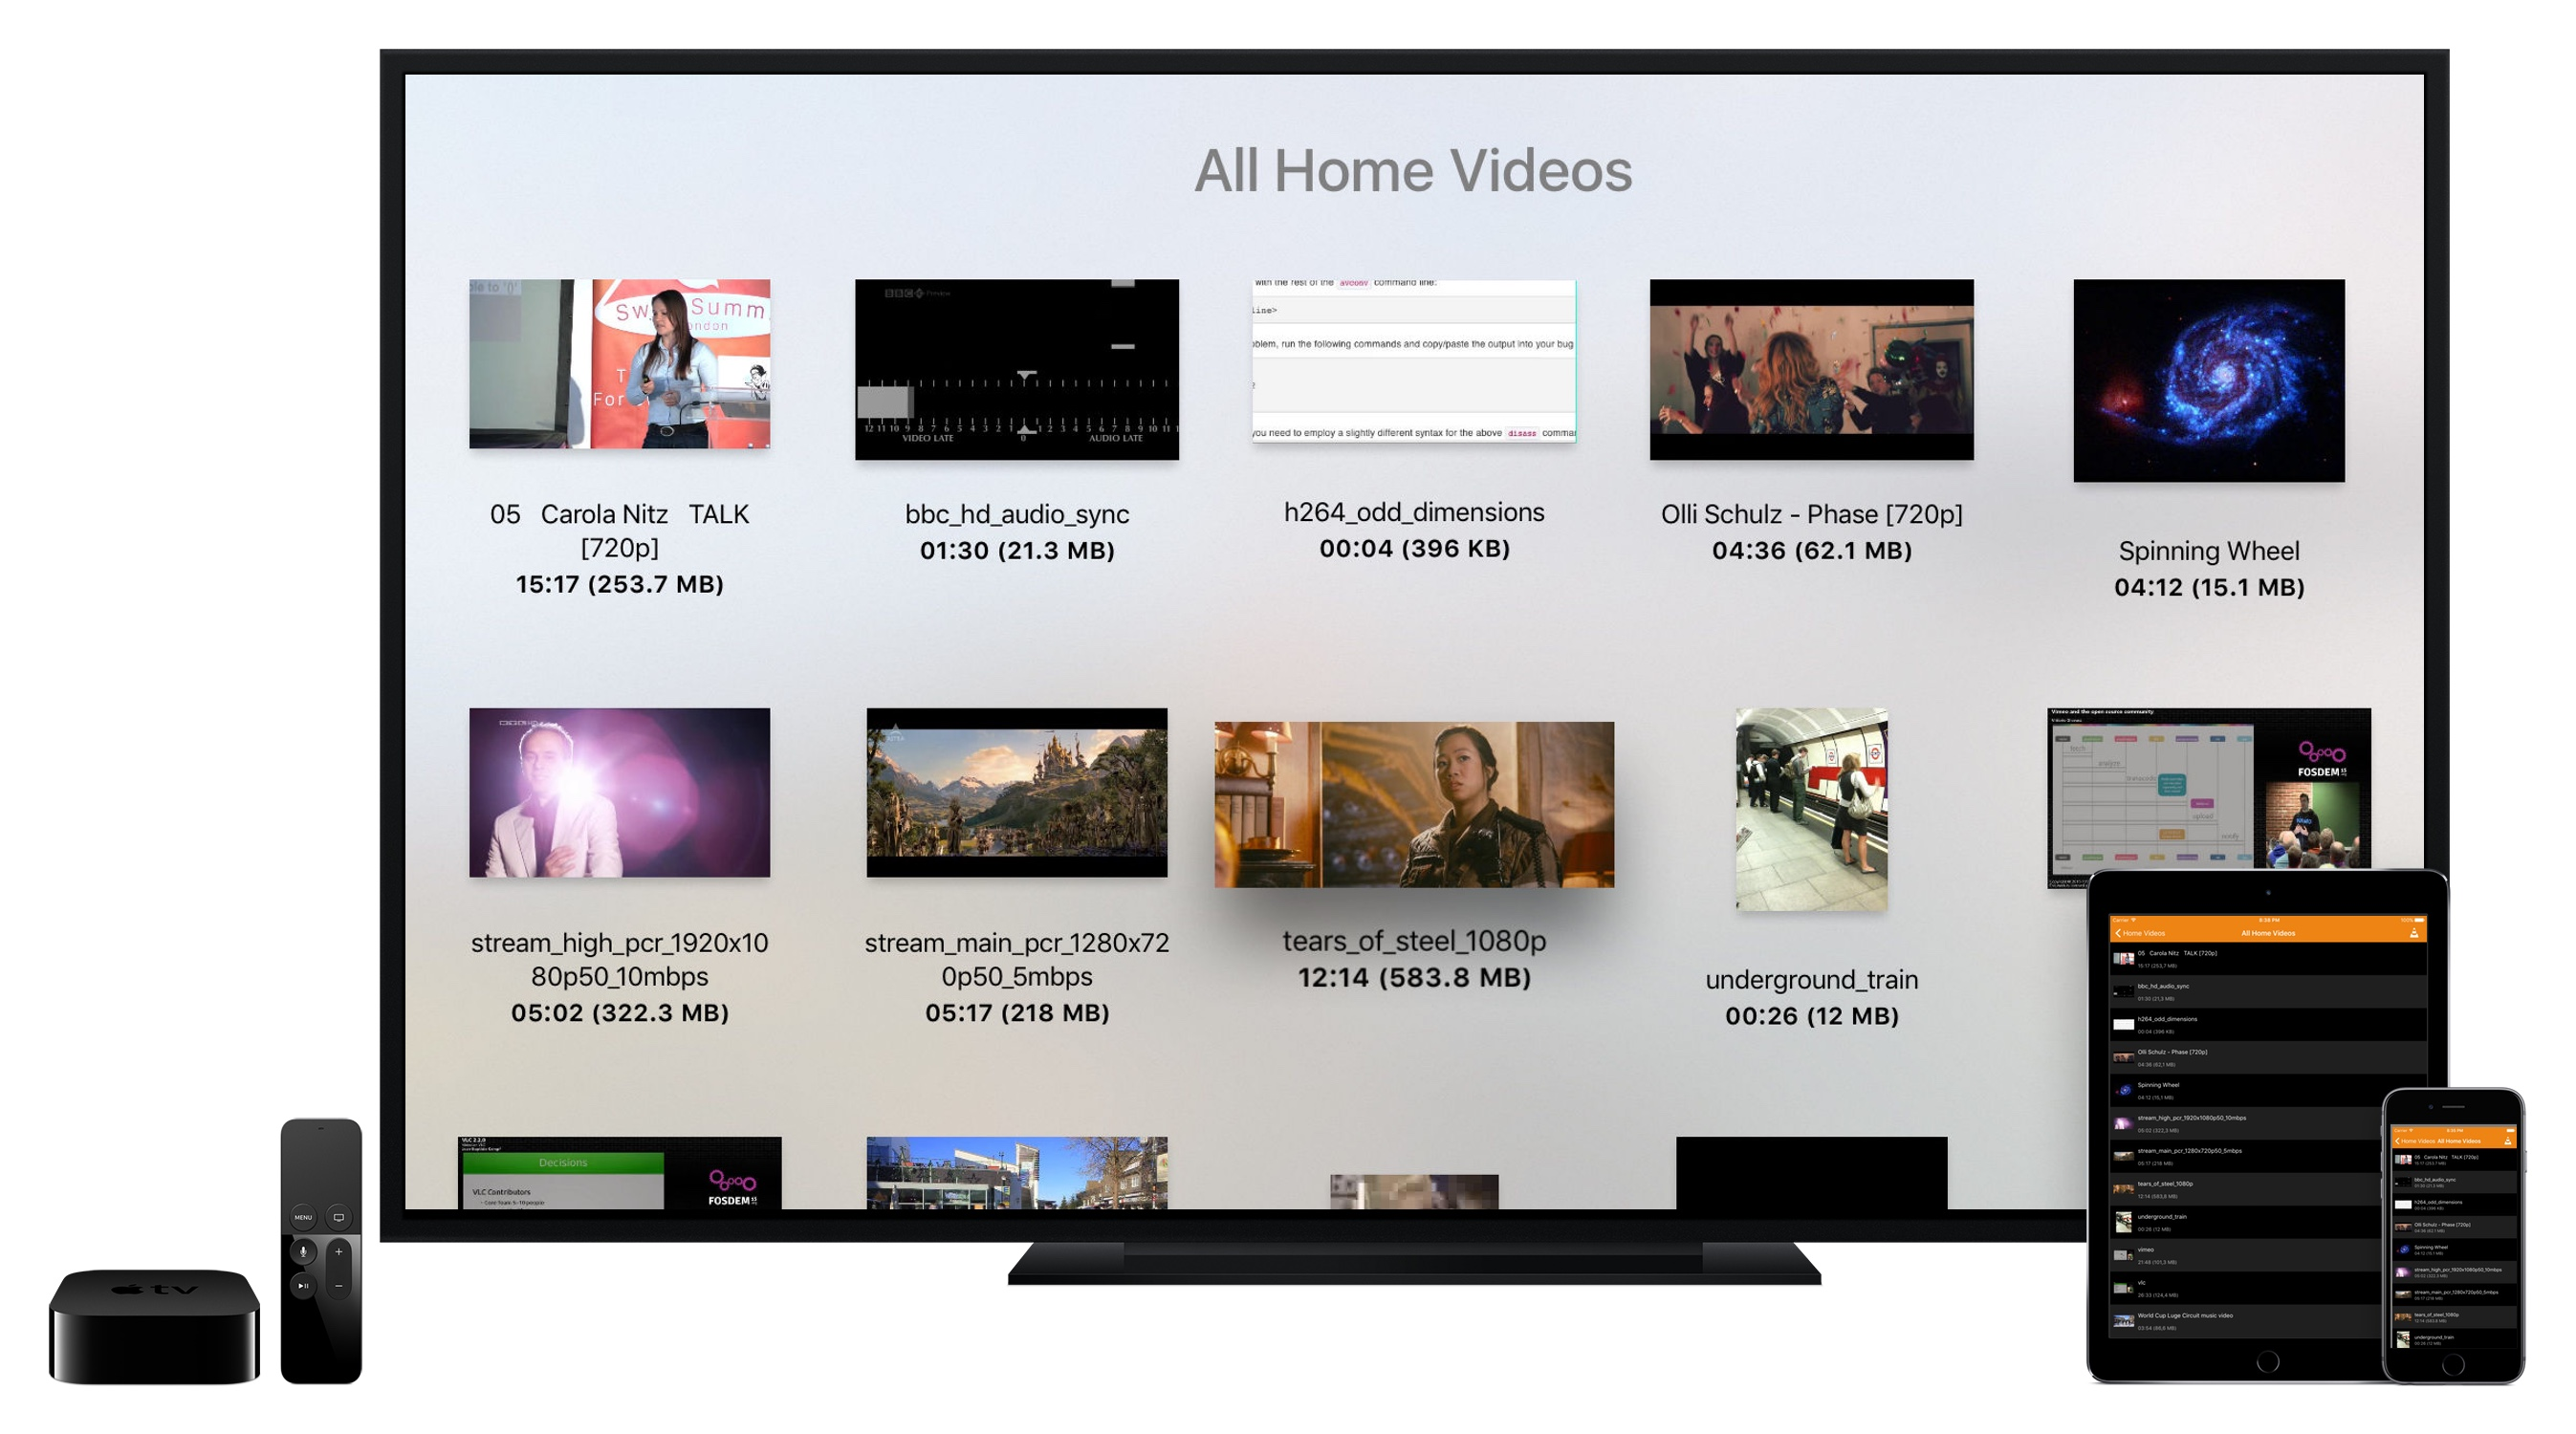 VLC Released For Apple TV: How To Watch MKV, AVI, M4V, MP4